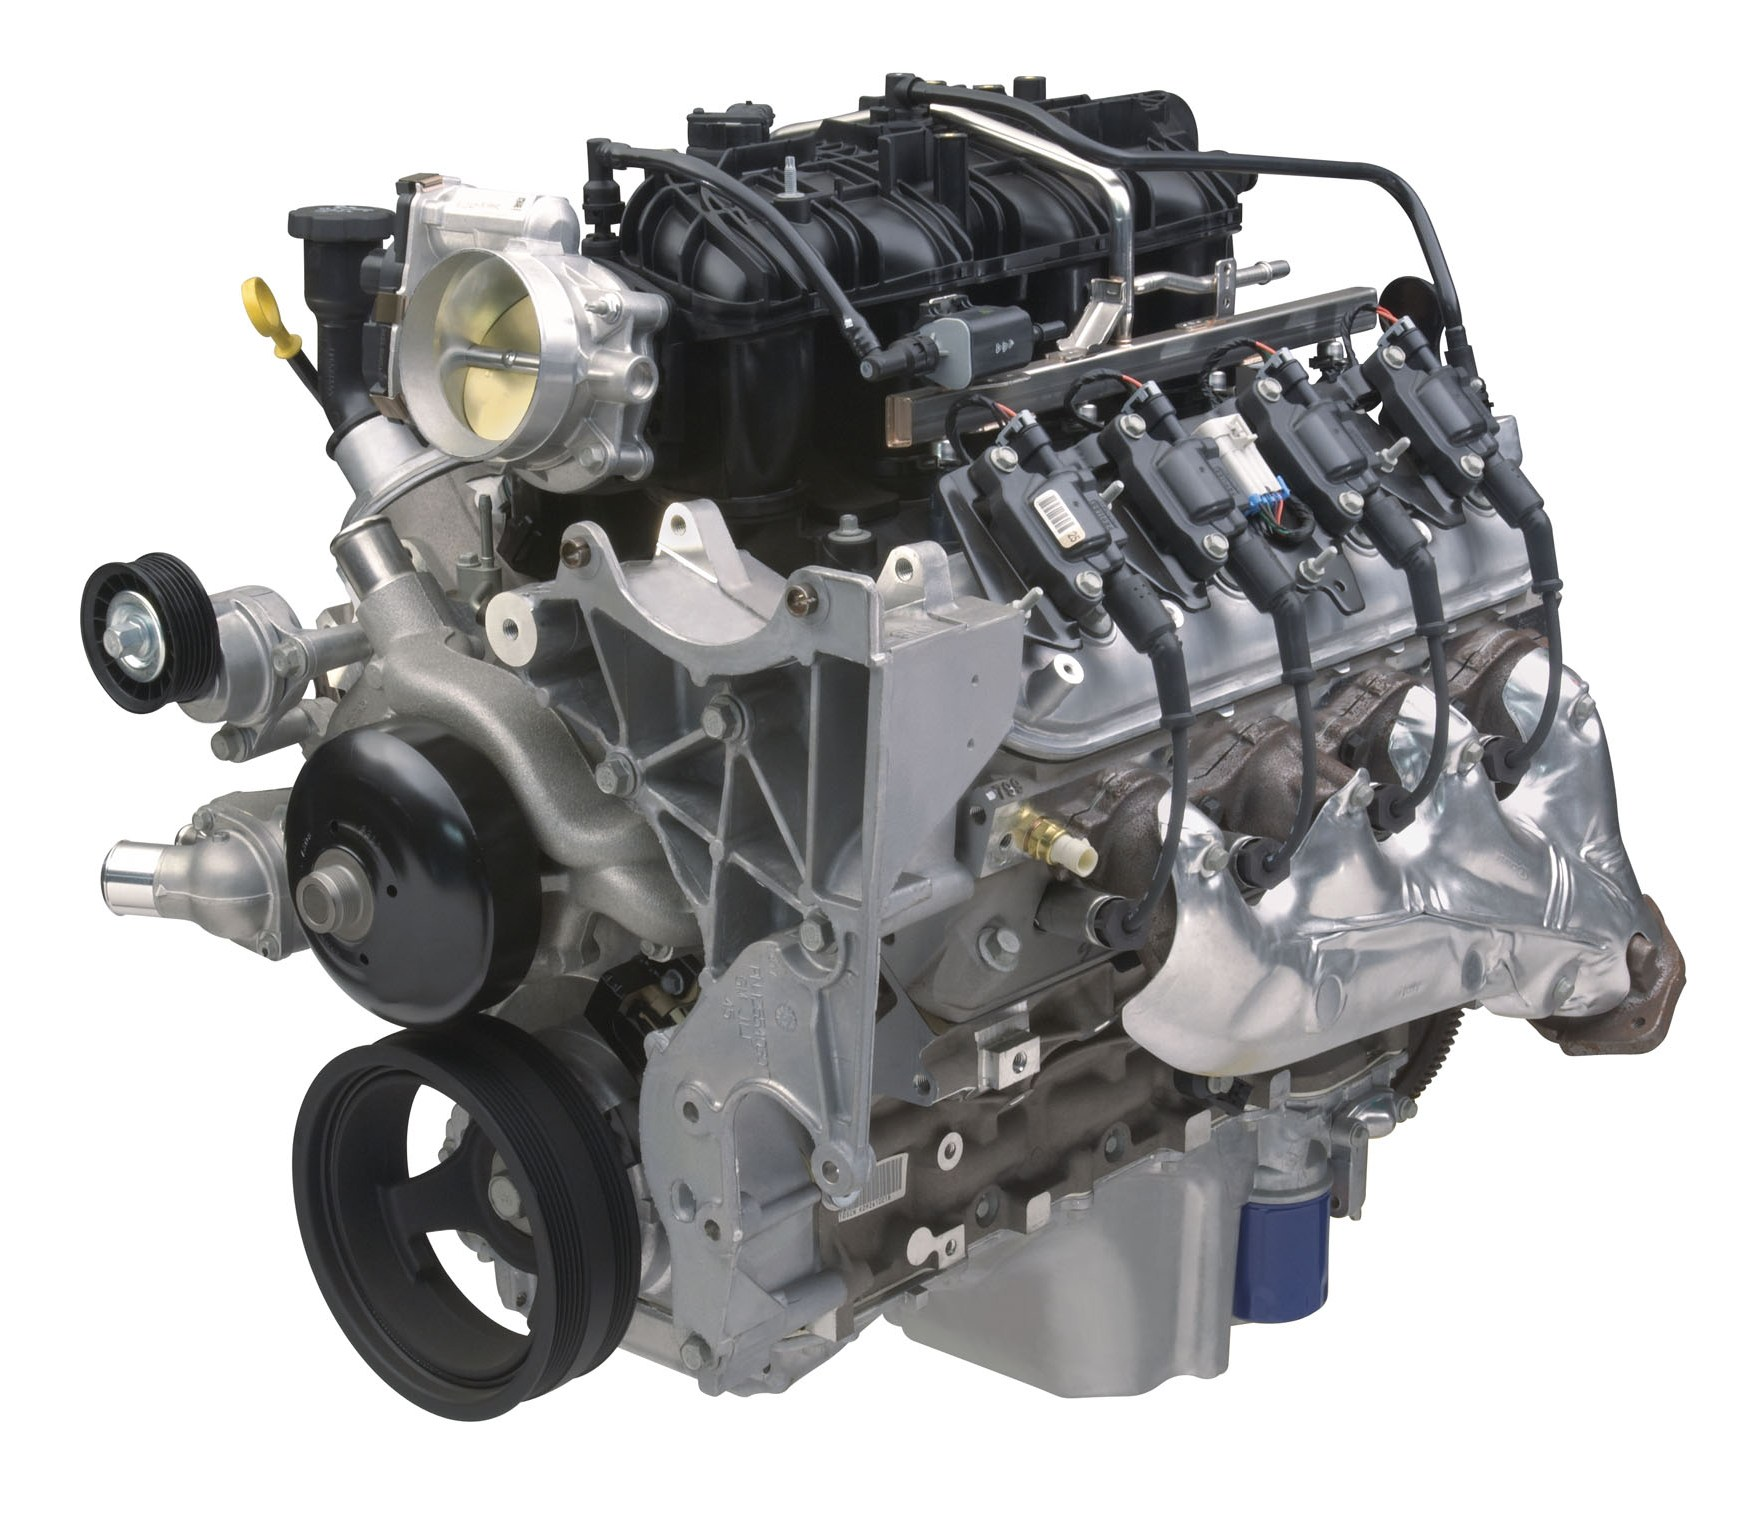 Gm Hot Rod Engine Gets Carb Certified Autoevolution